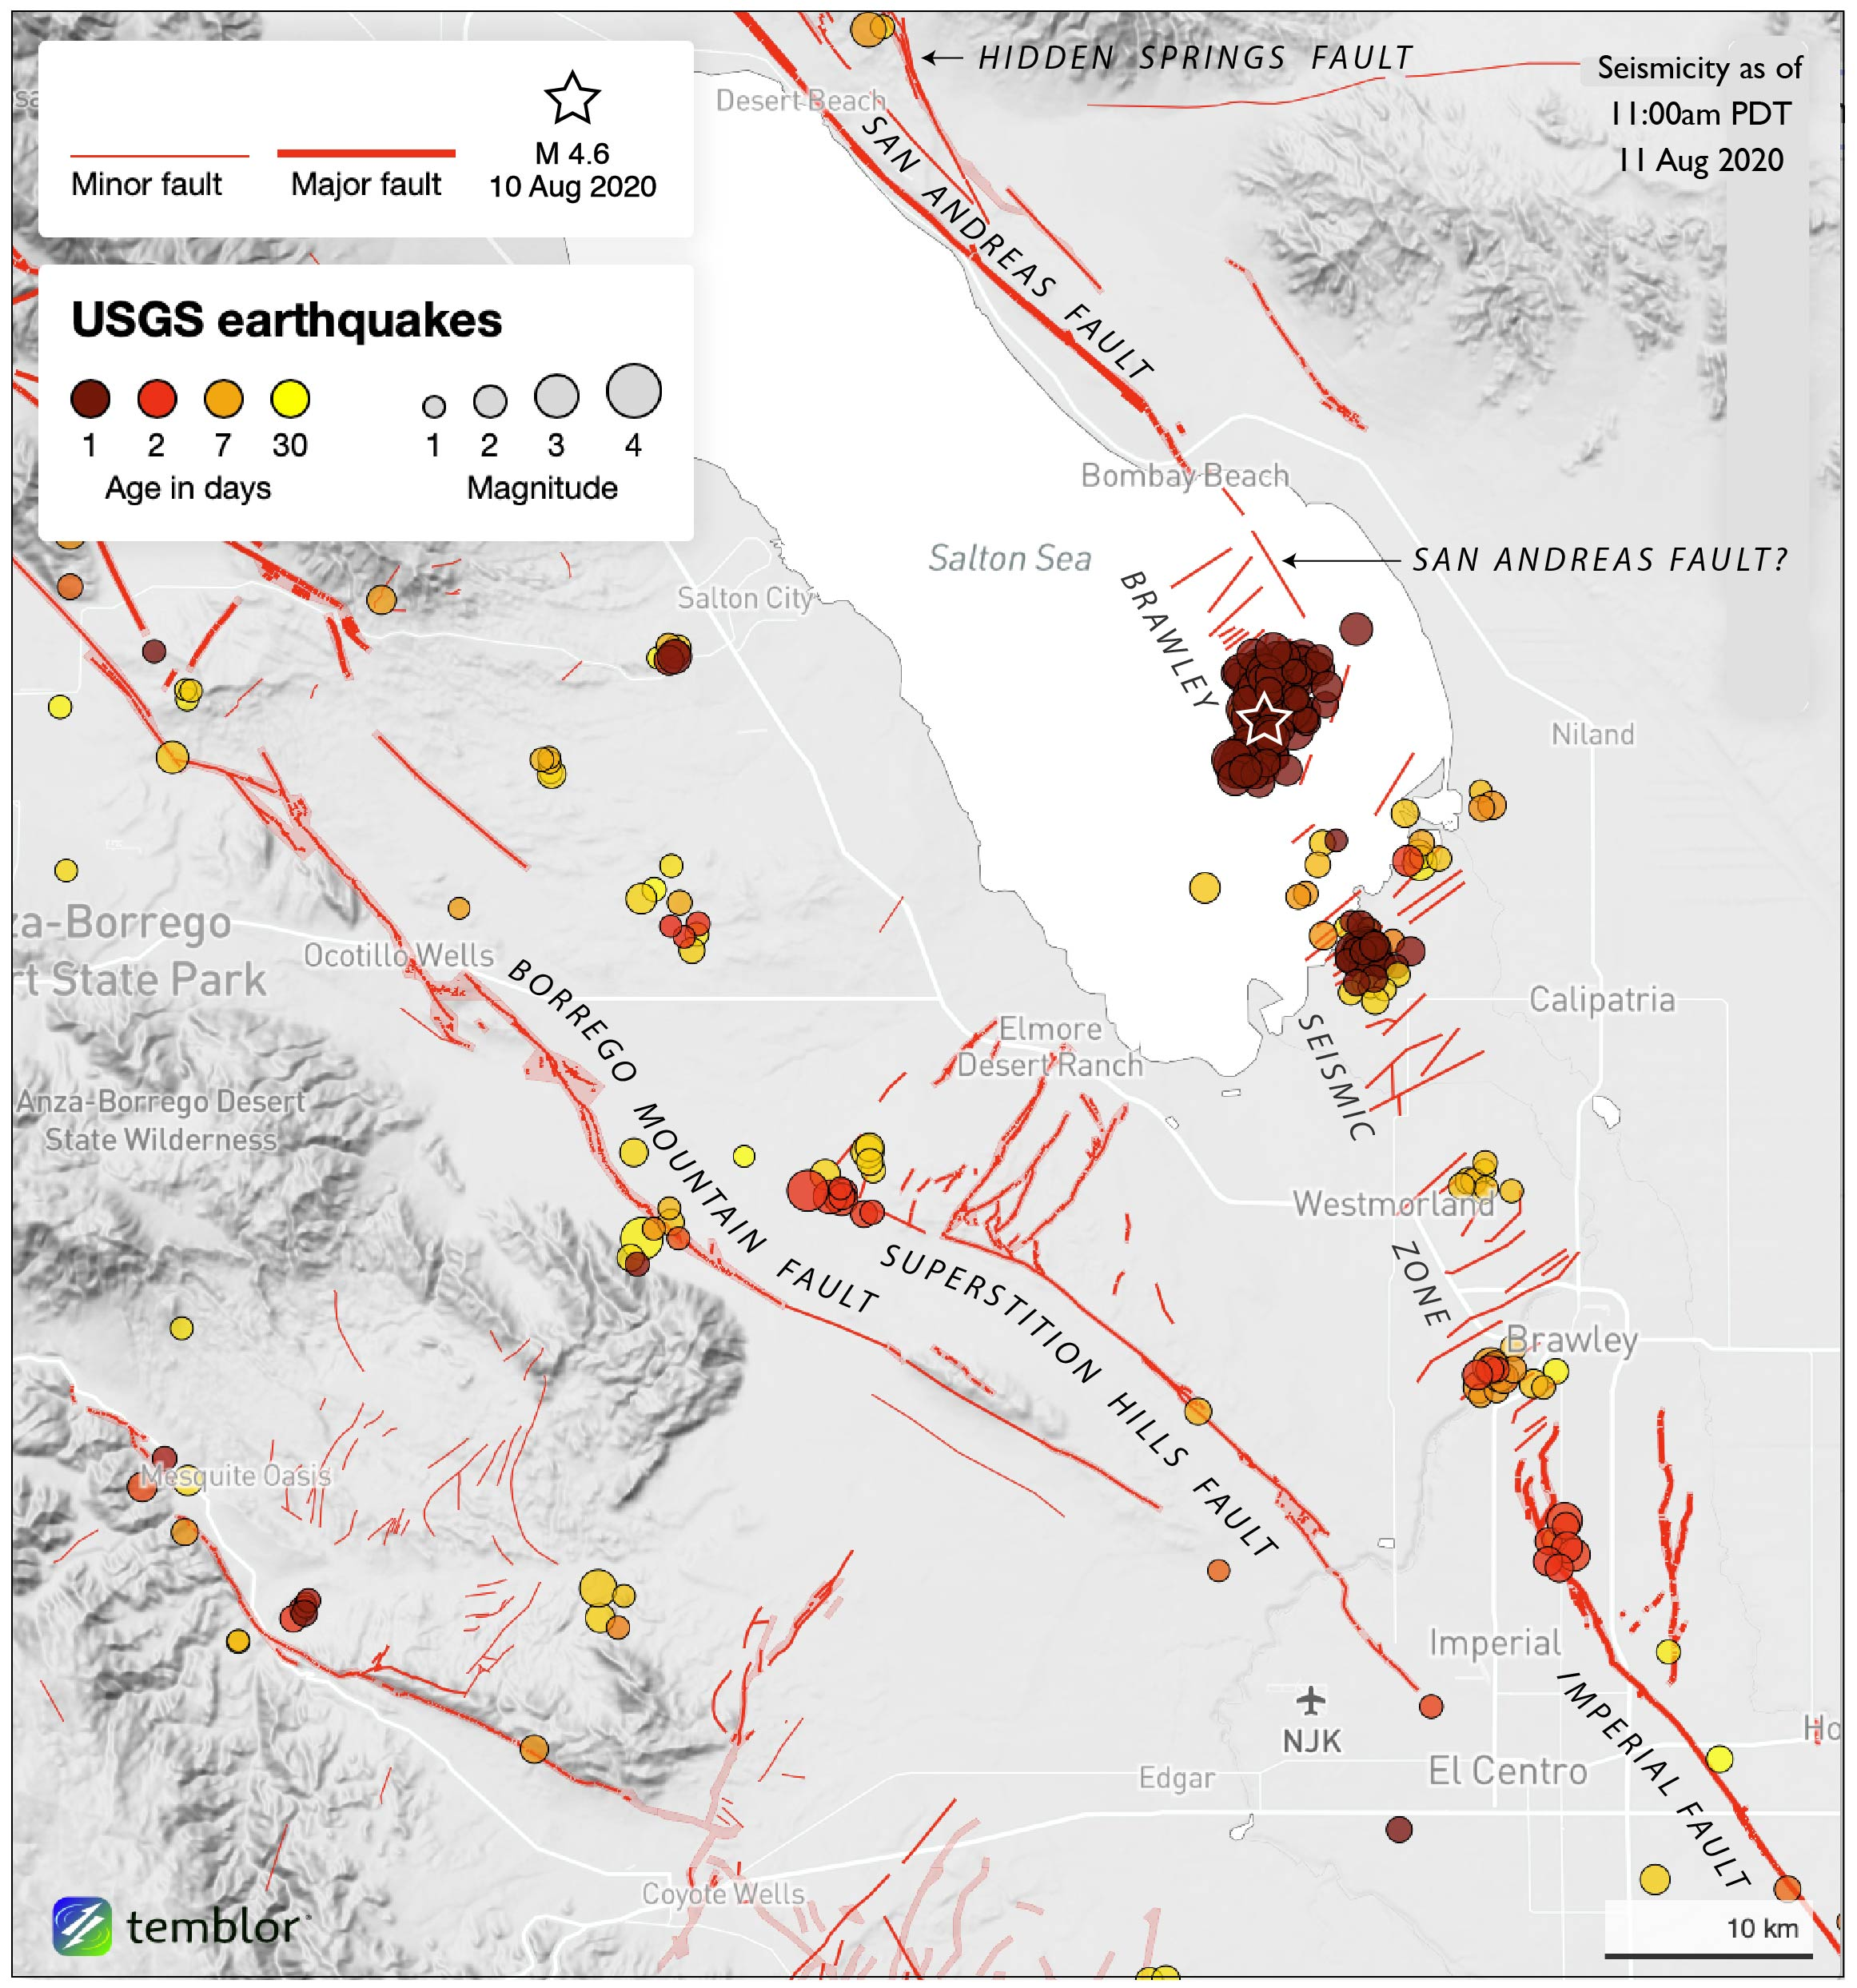 map with red dots showing earthquake locations and red lines showing fault locations